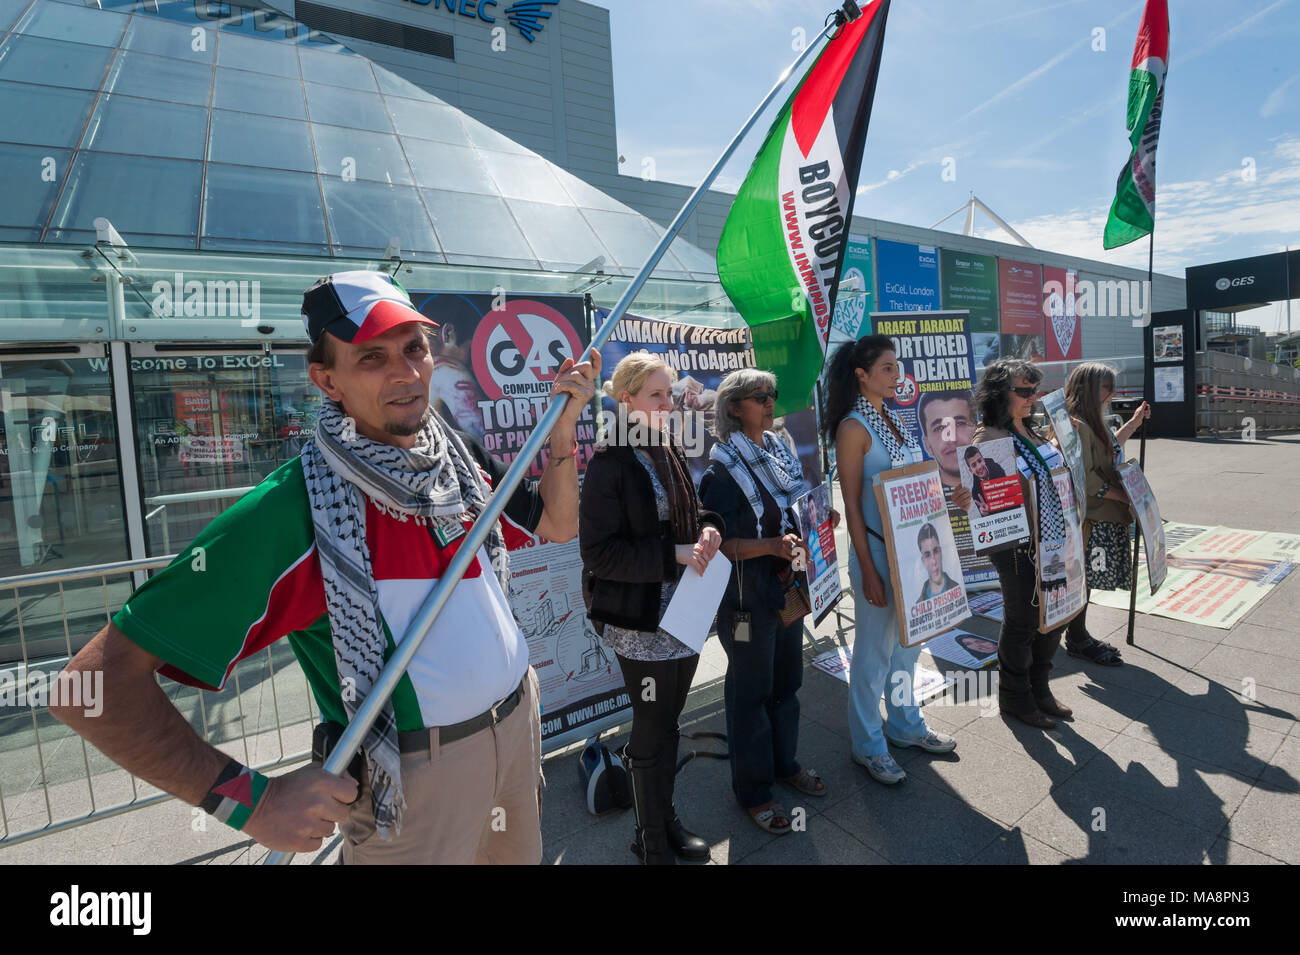 Inminds portesters prepare to give a presentaiont at Stop 4S protest outside G4S AGM at Excel London. Stock Photo